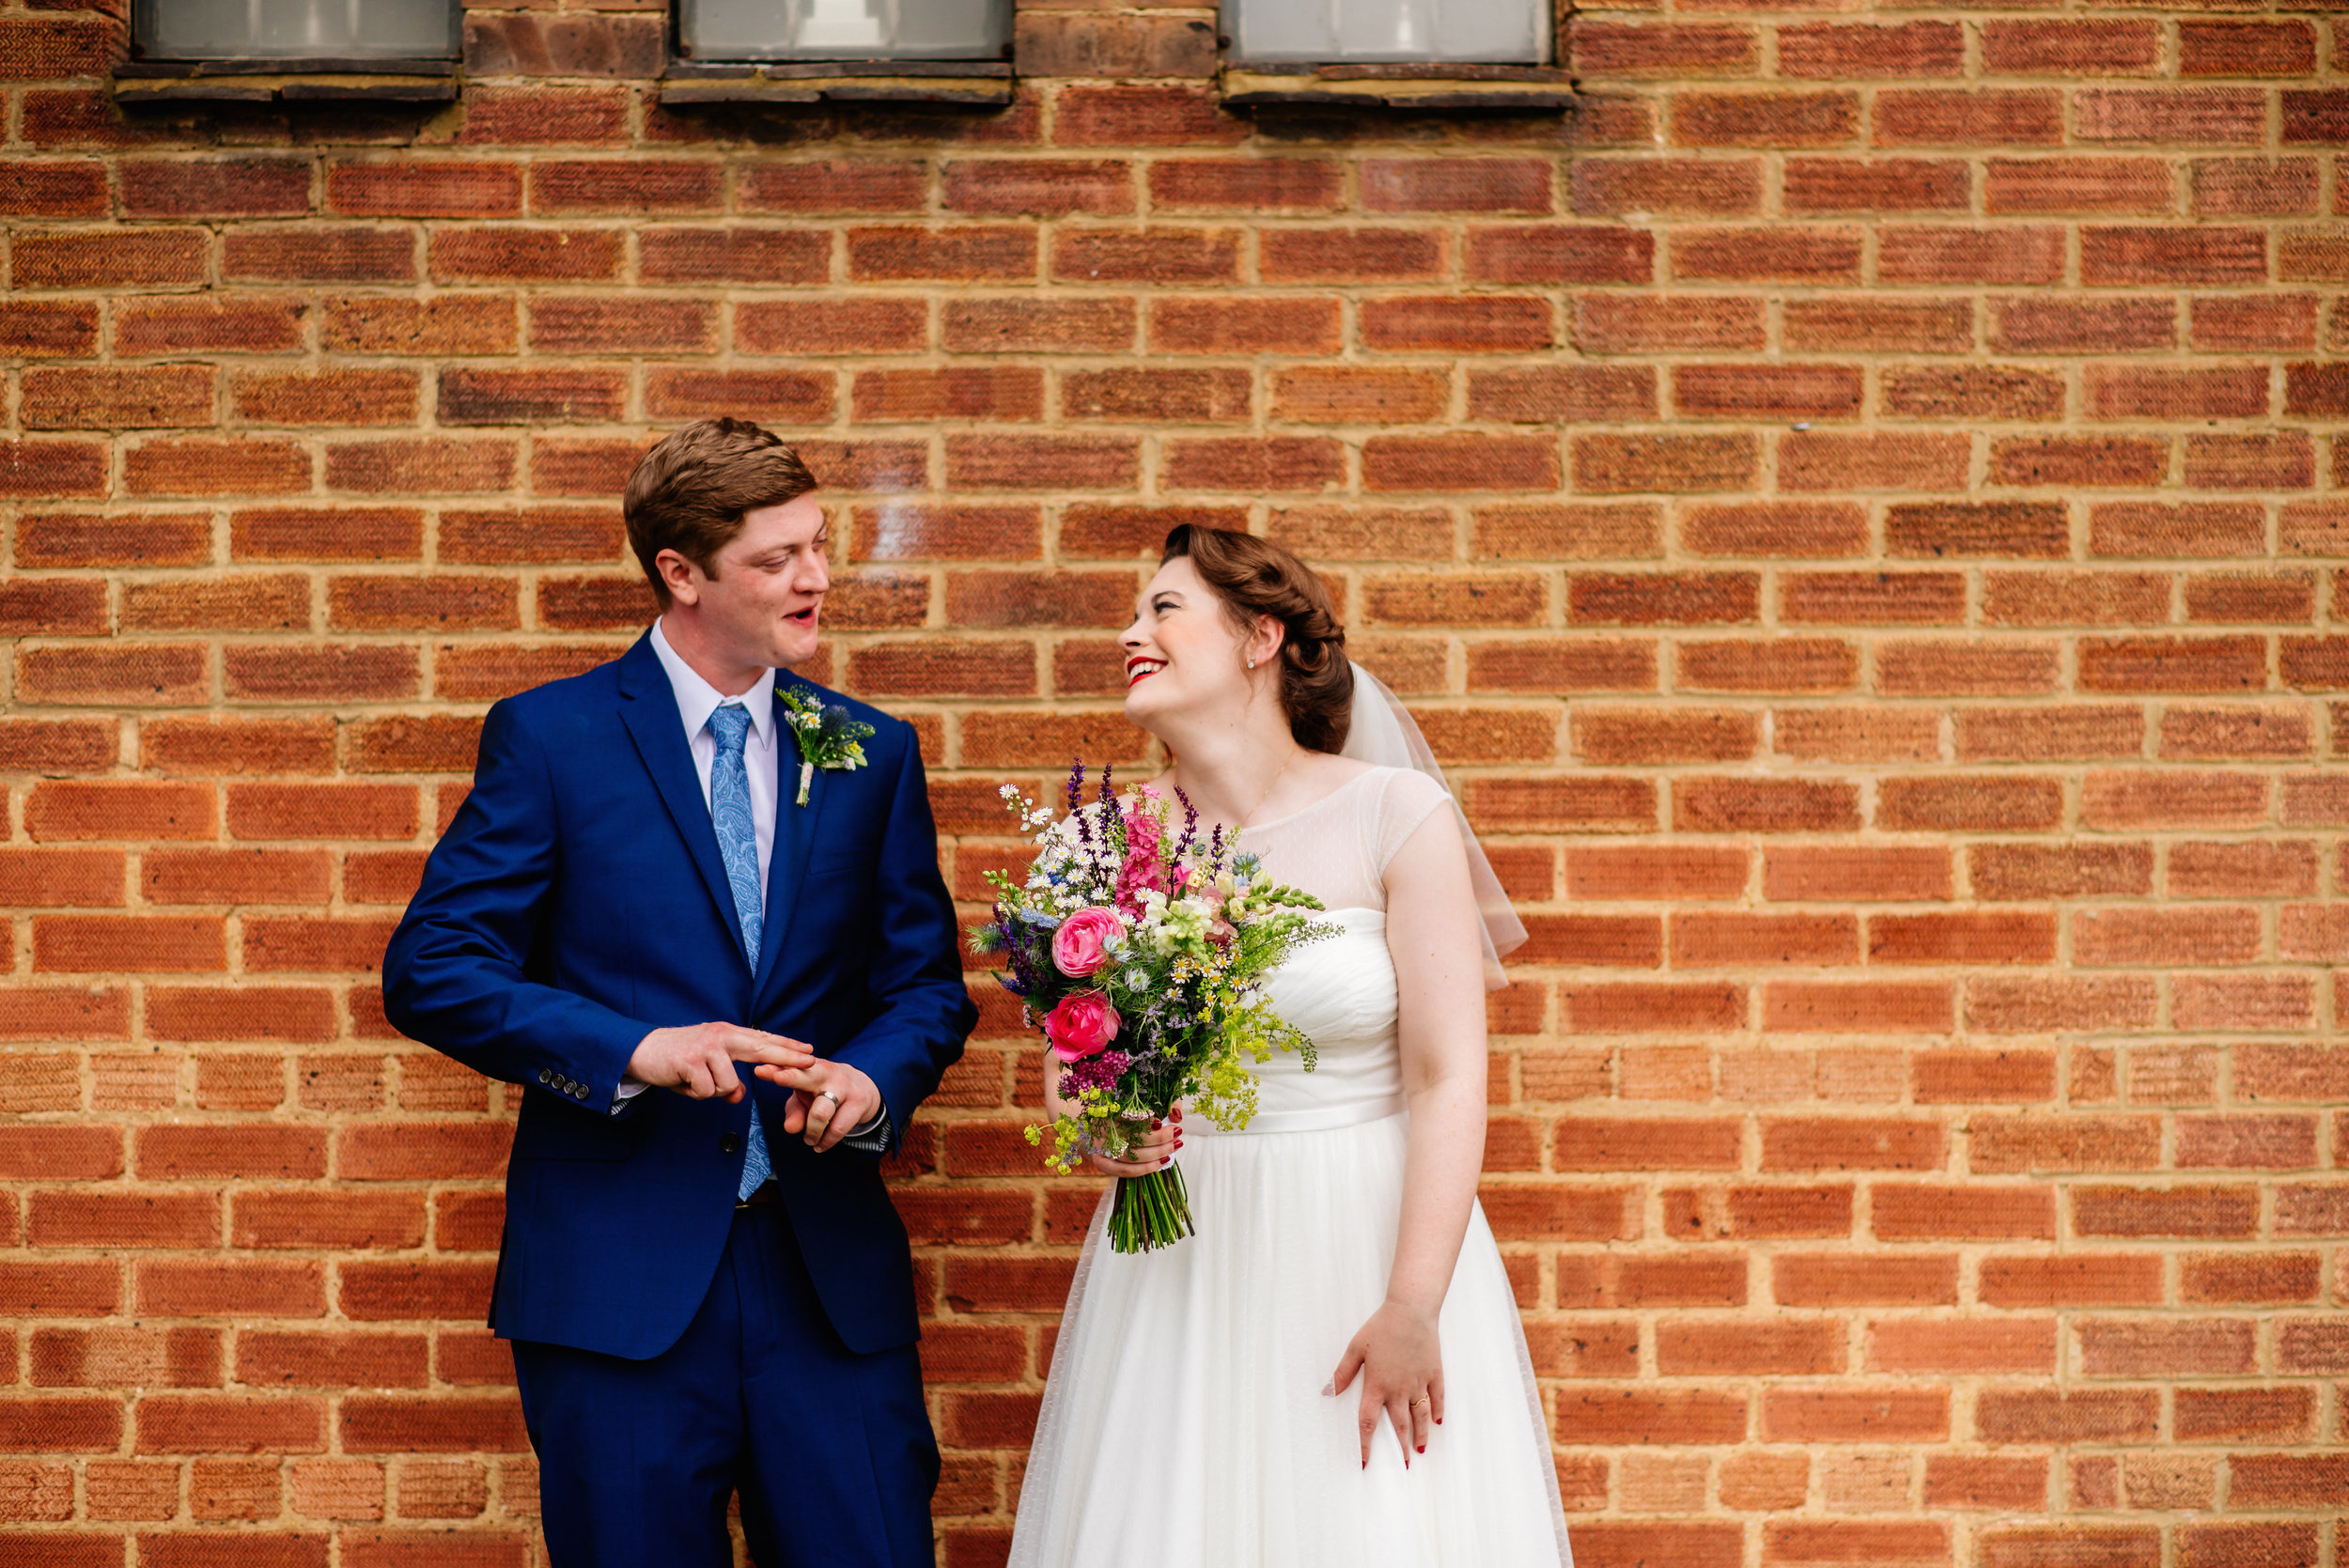 129 Emily + Daniel | Berkhamsted Towhall Wedding London Wedding Photographer Bride Groom Watford.jpg